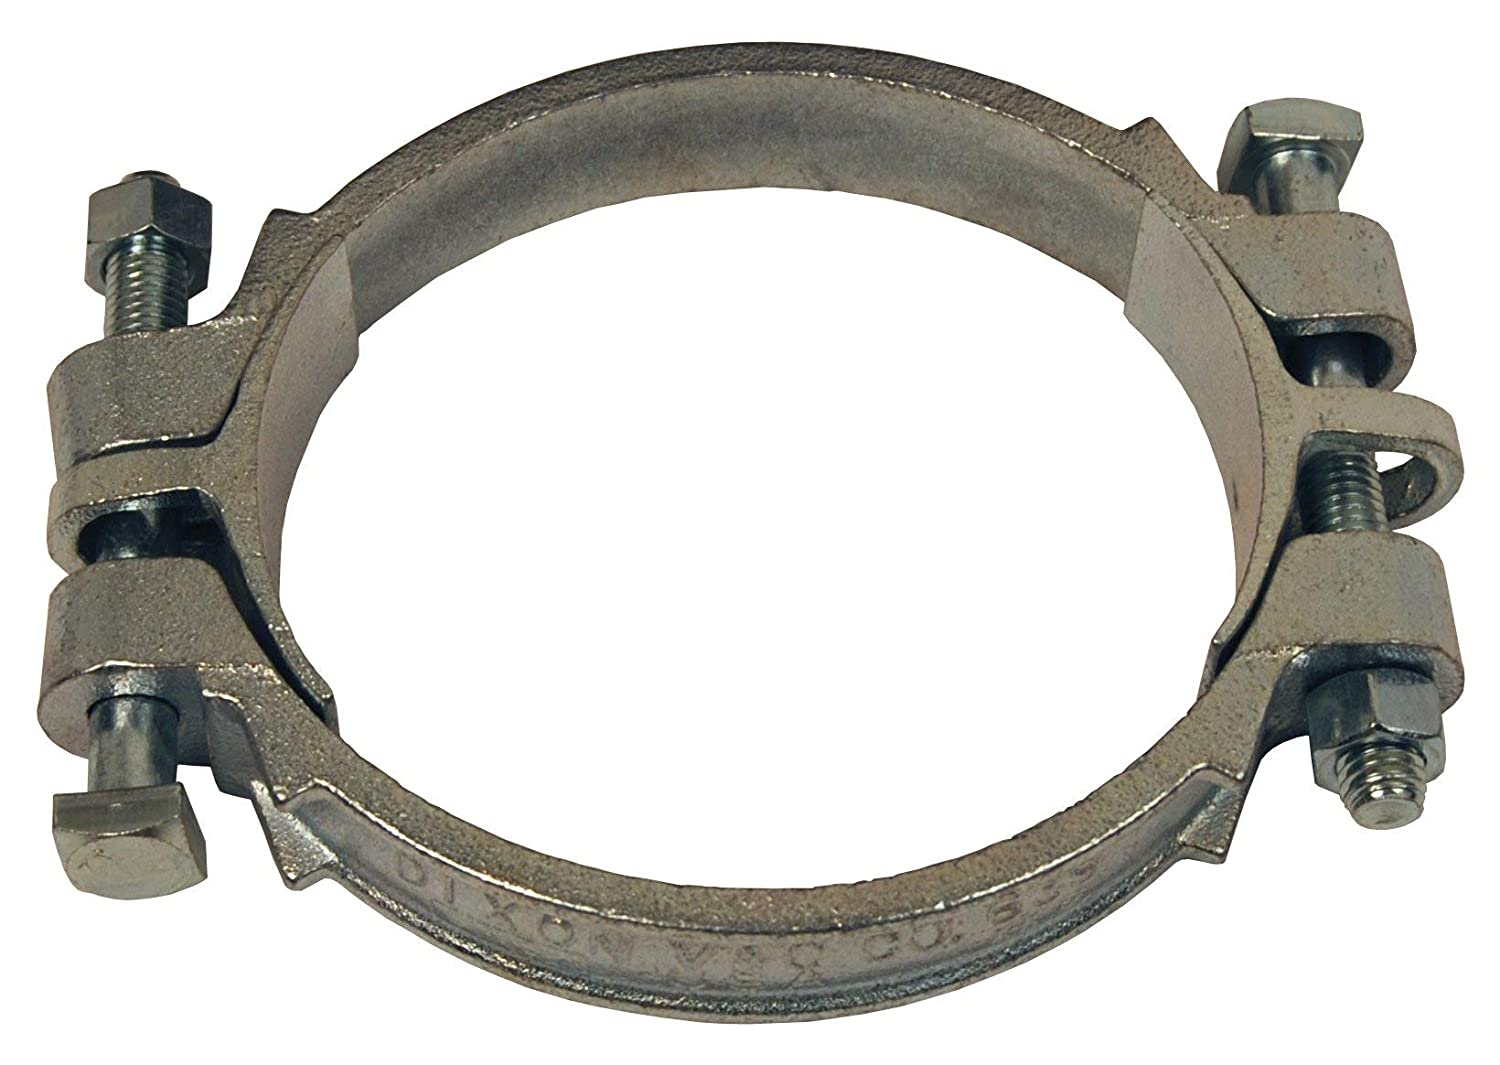 6 ID Zinc Plated Iron Nut-MN8 Dixon 639 Double Bolt Clamp with SC10 Saddles Bolt-MB8450